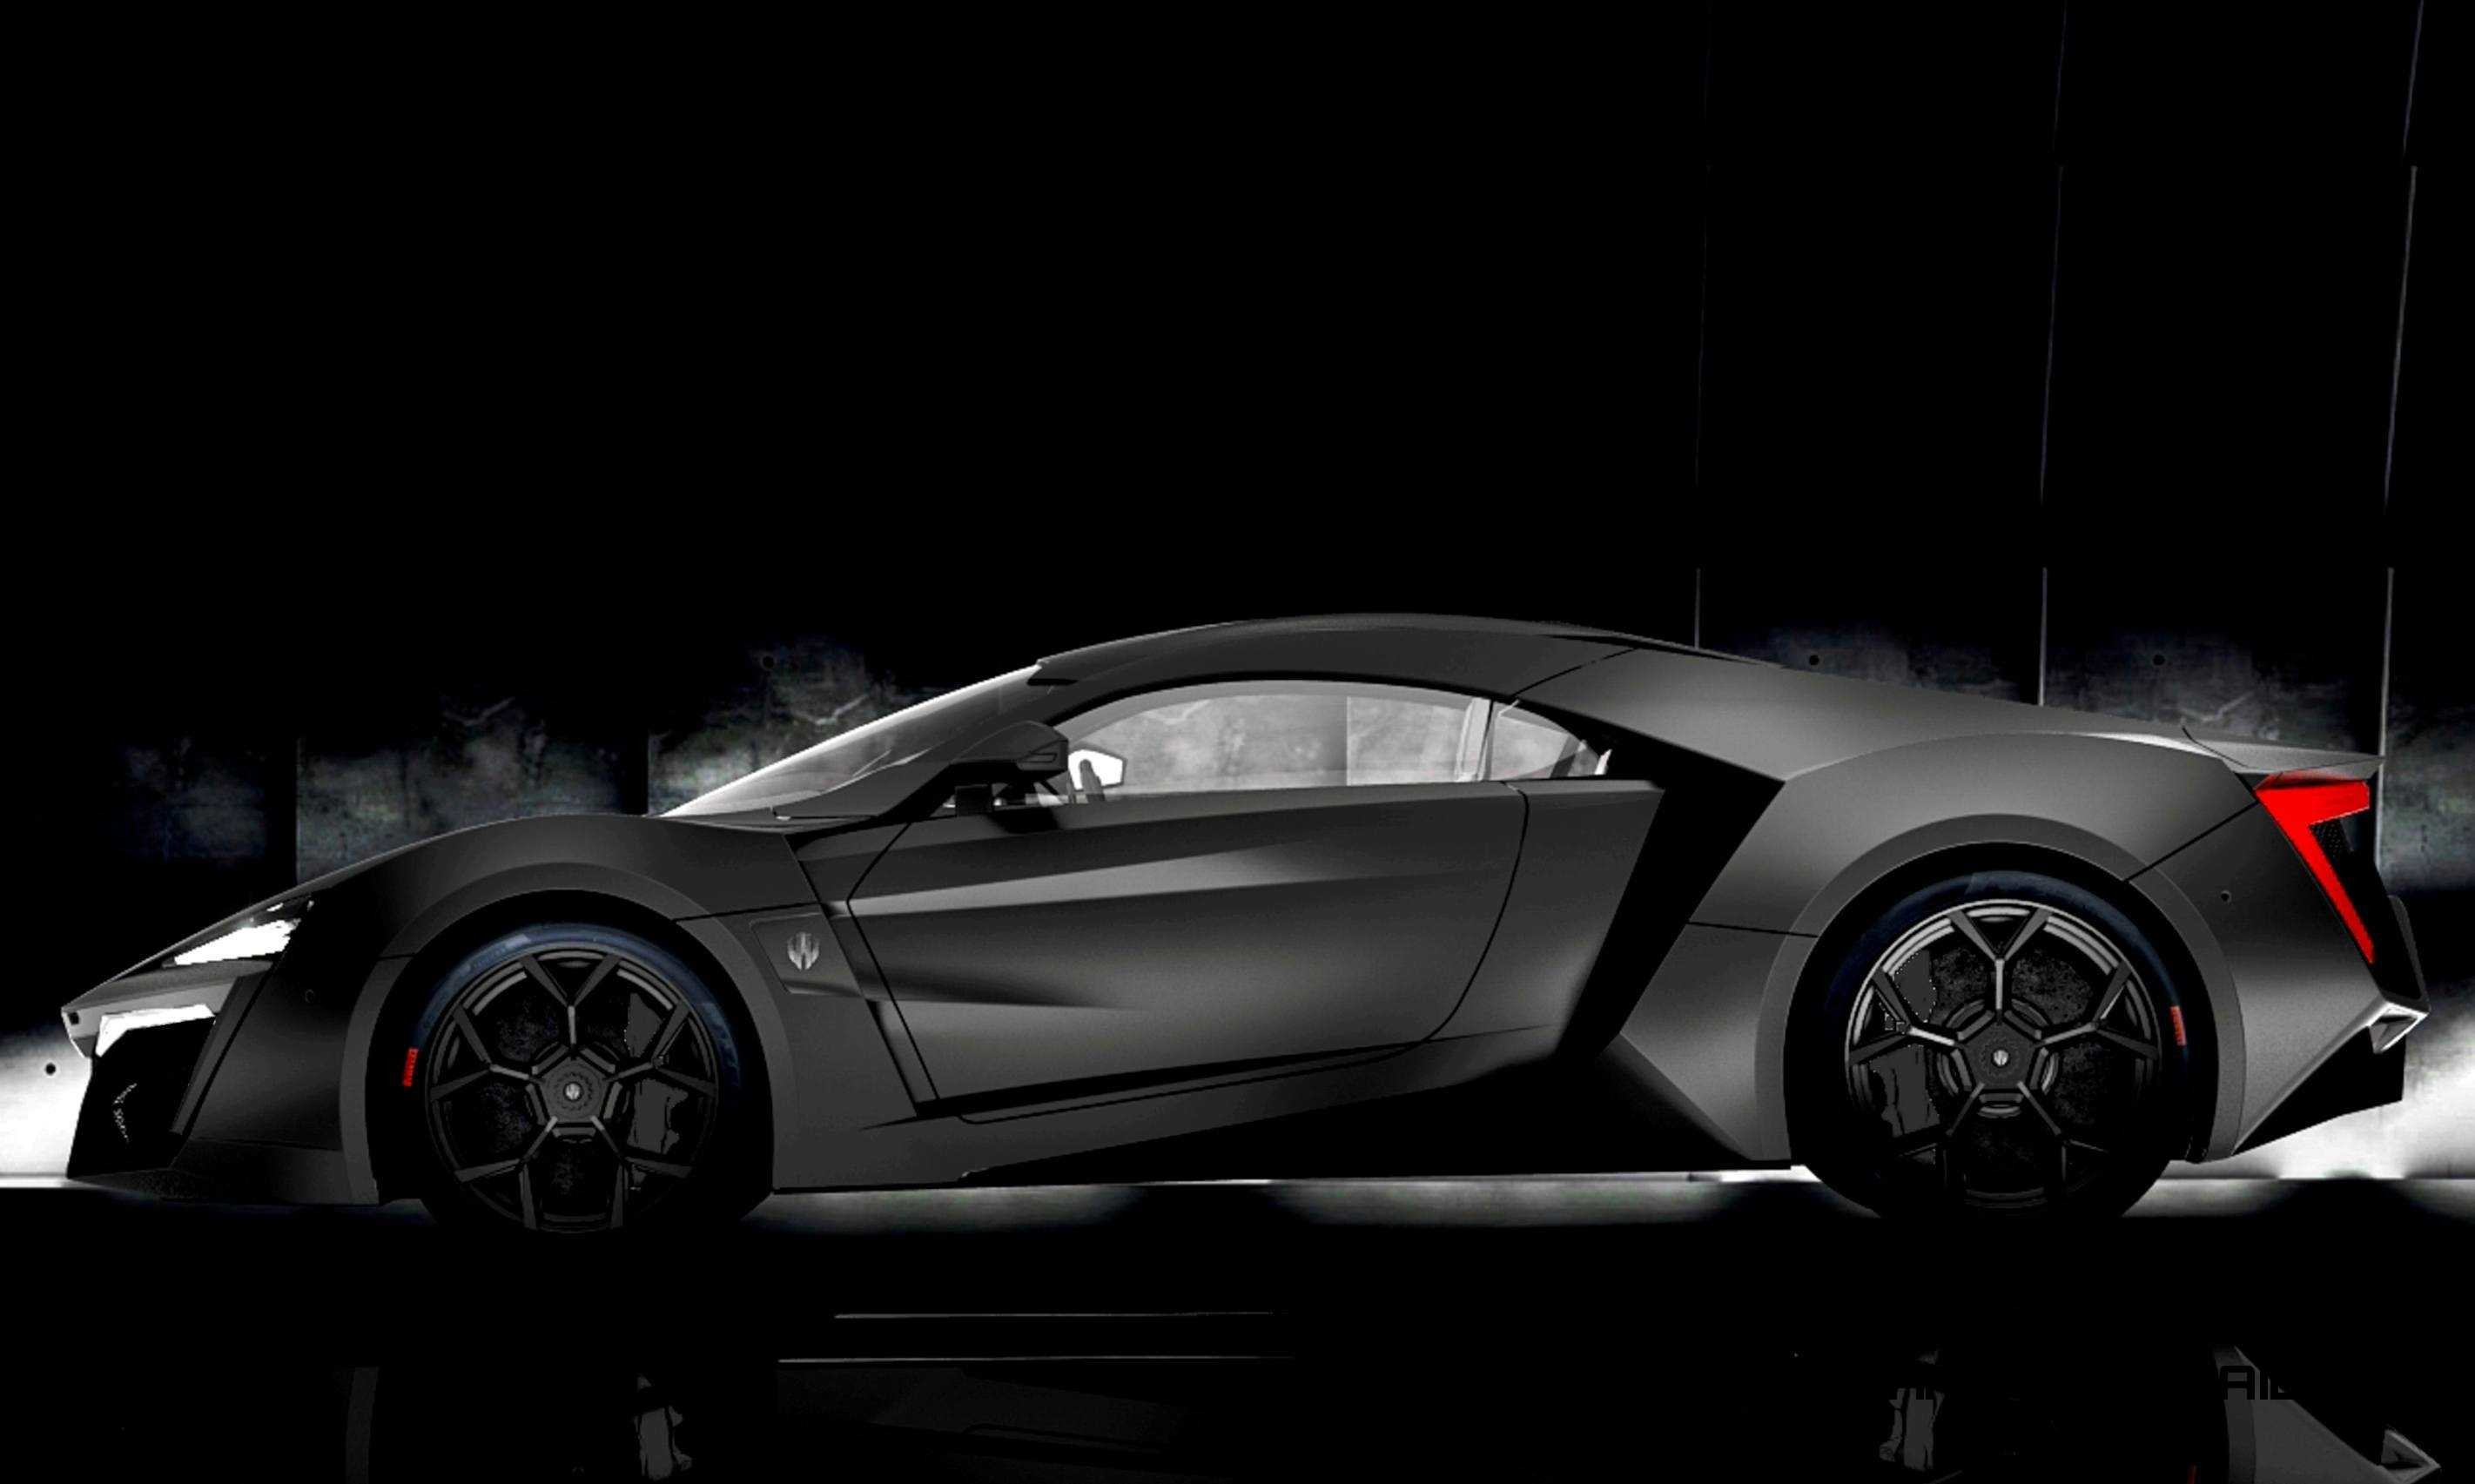 2843x1705 2014 W Motors Lykan Hypersport in 40+ Amazing New Wallpapers, Including  MegaLux Interior